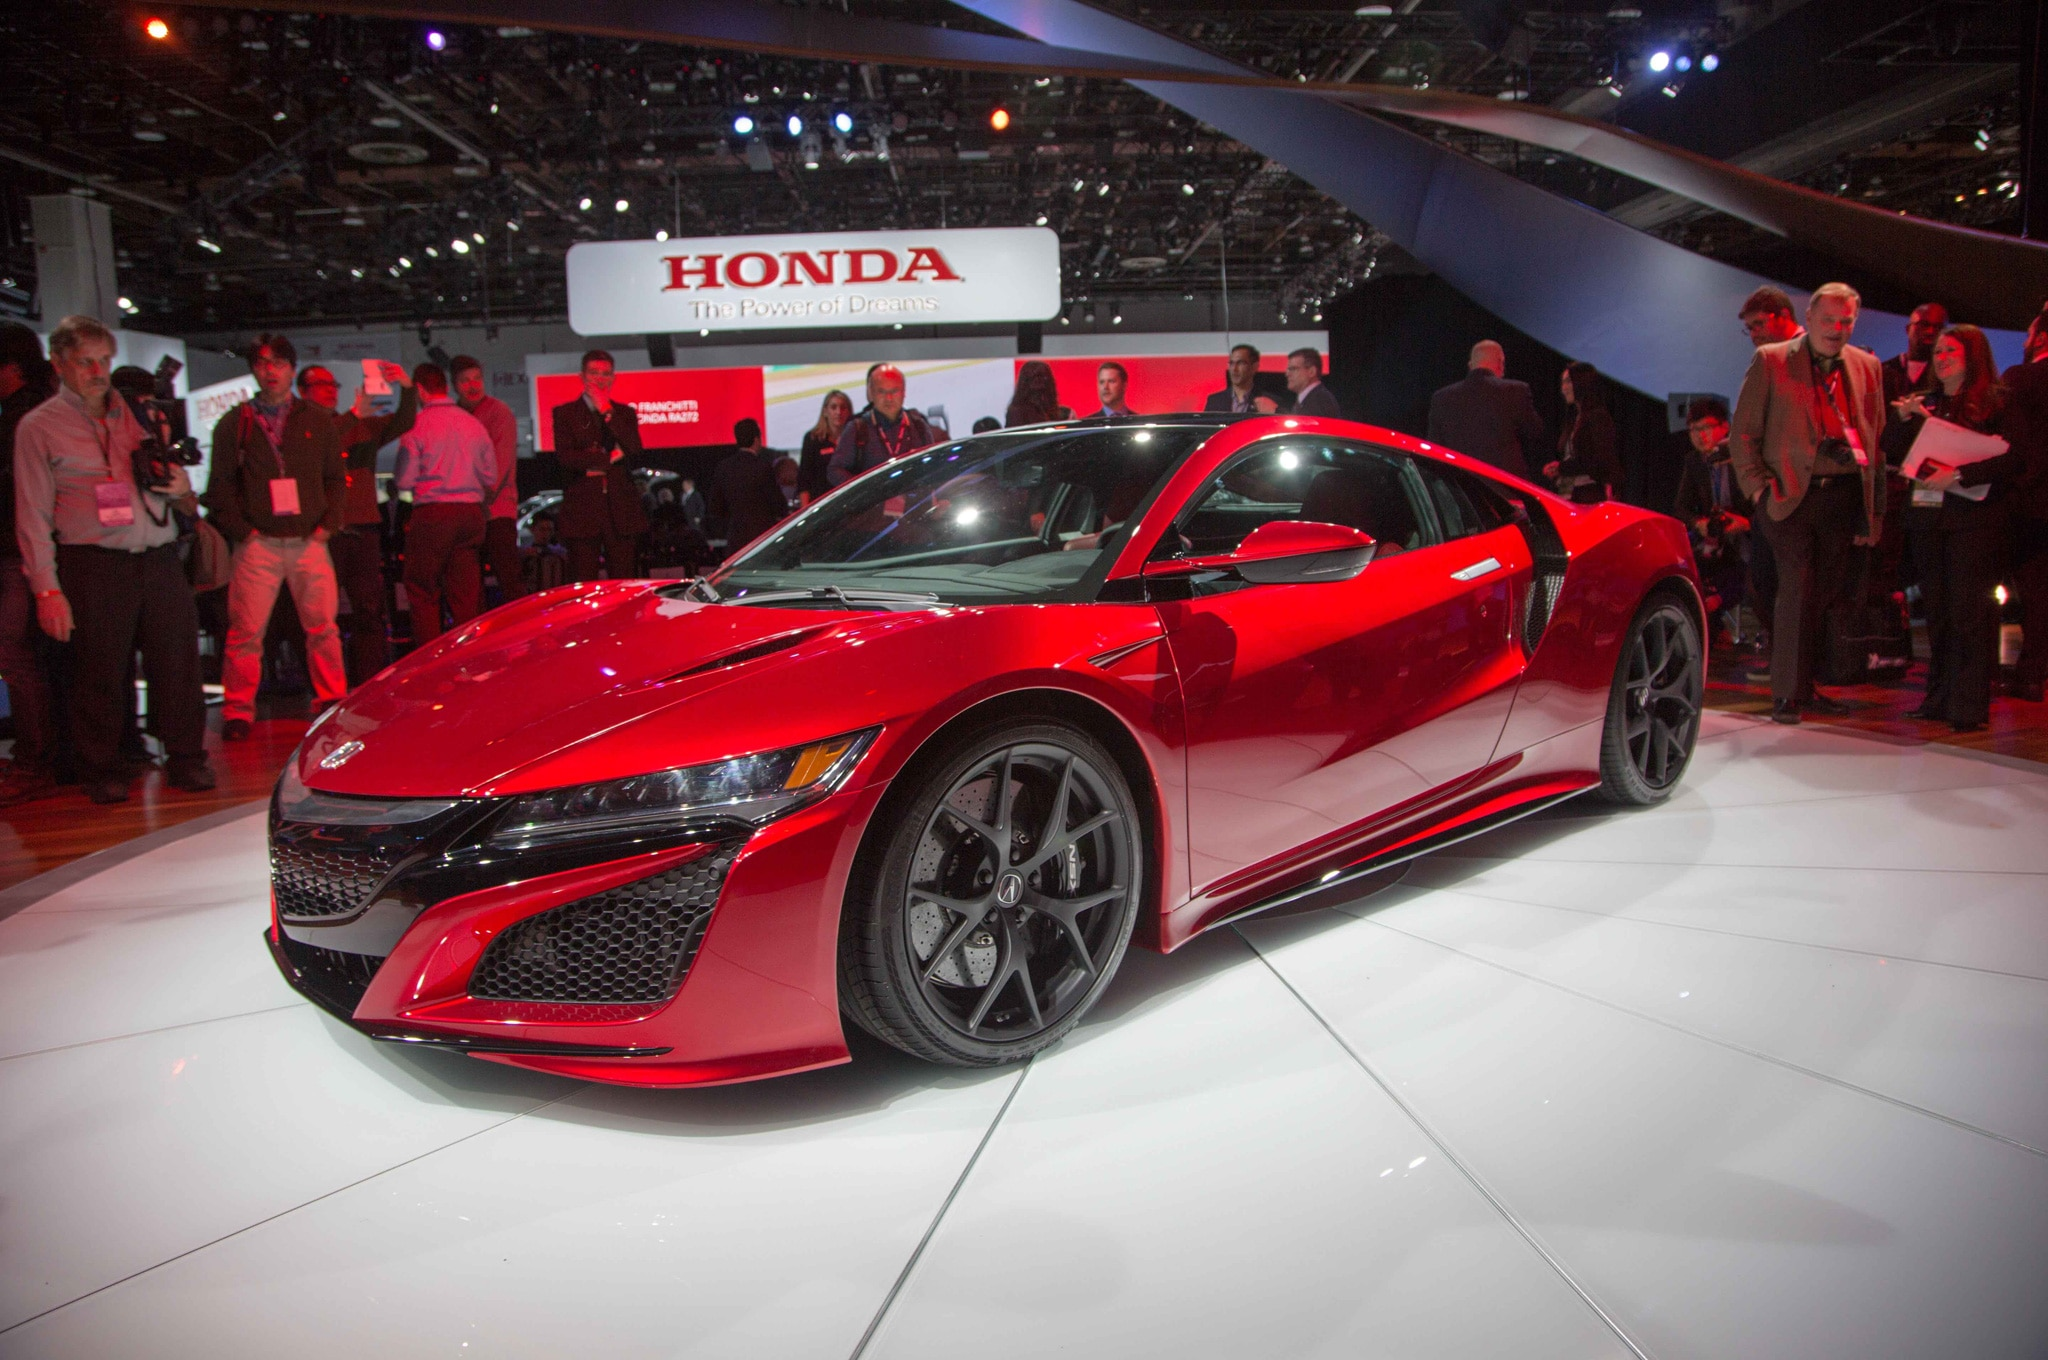 2017 Acura NSX Priced From $157,800-$207,500